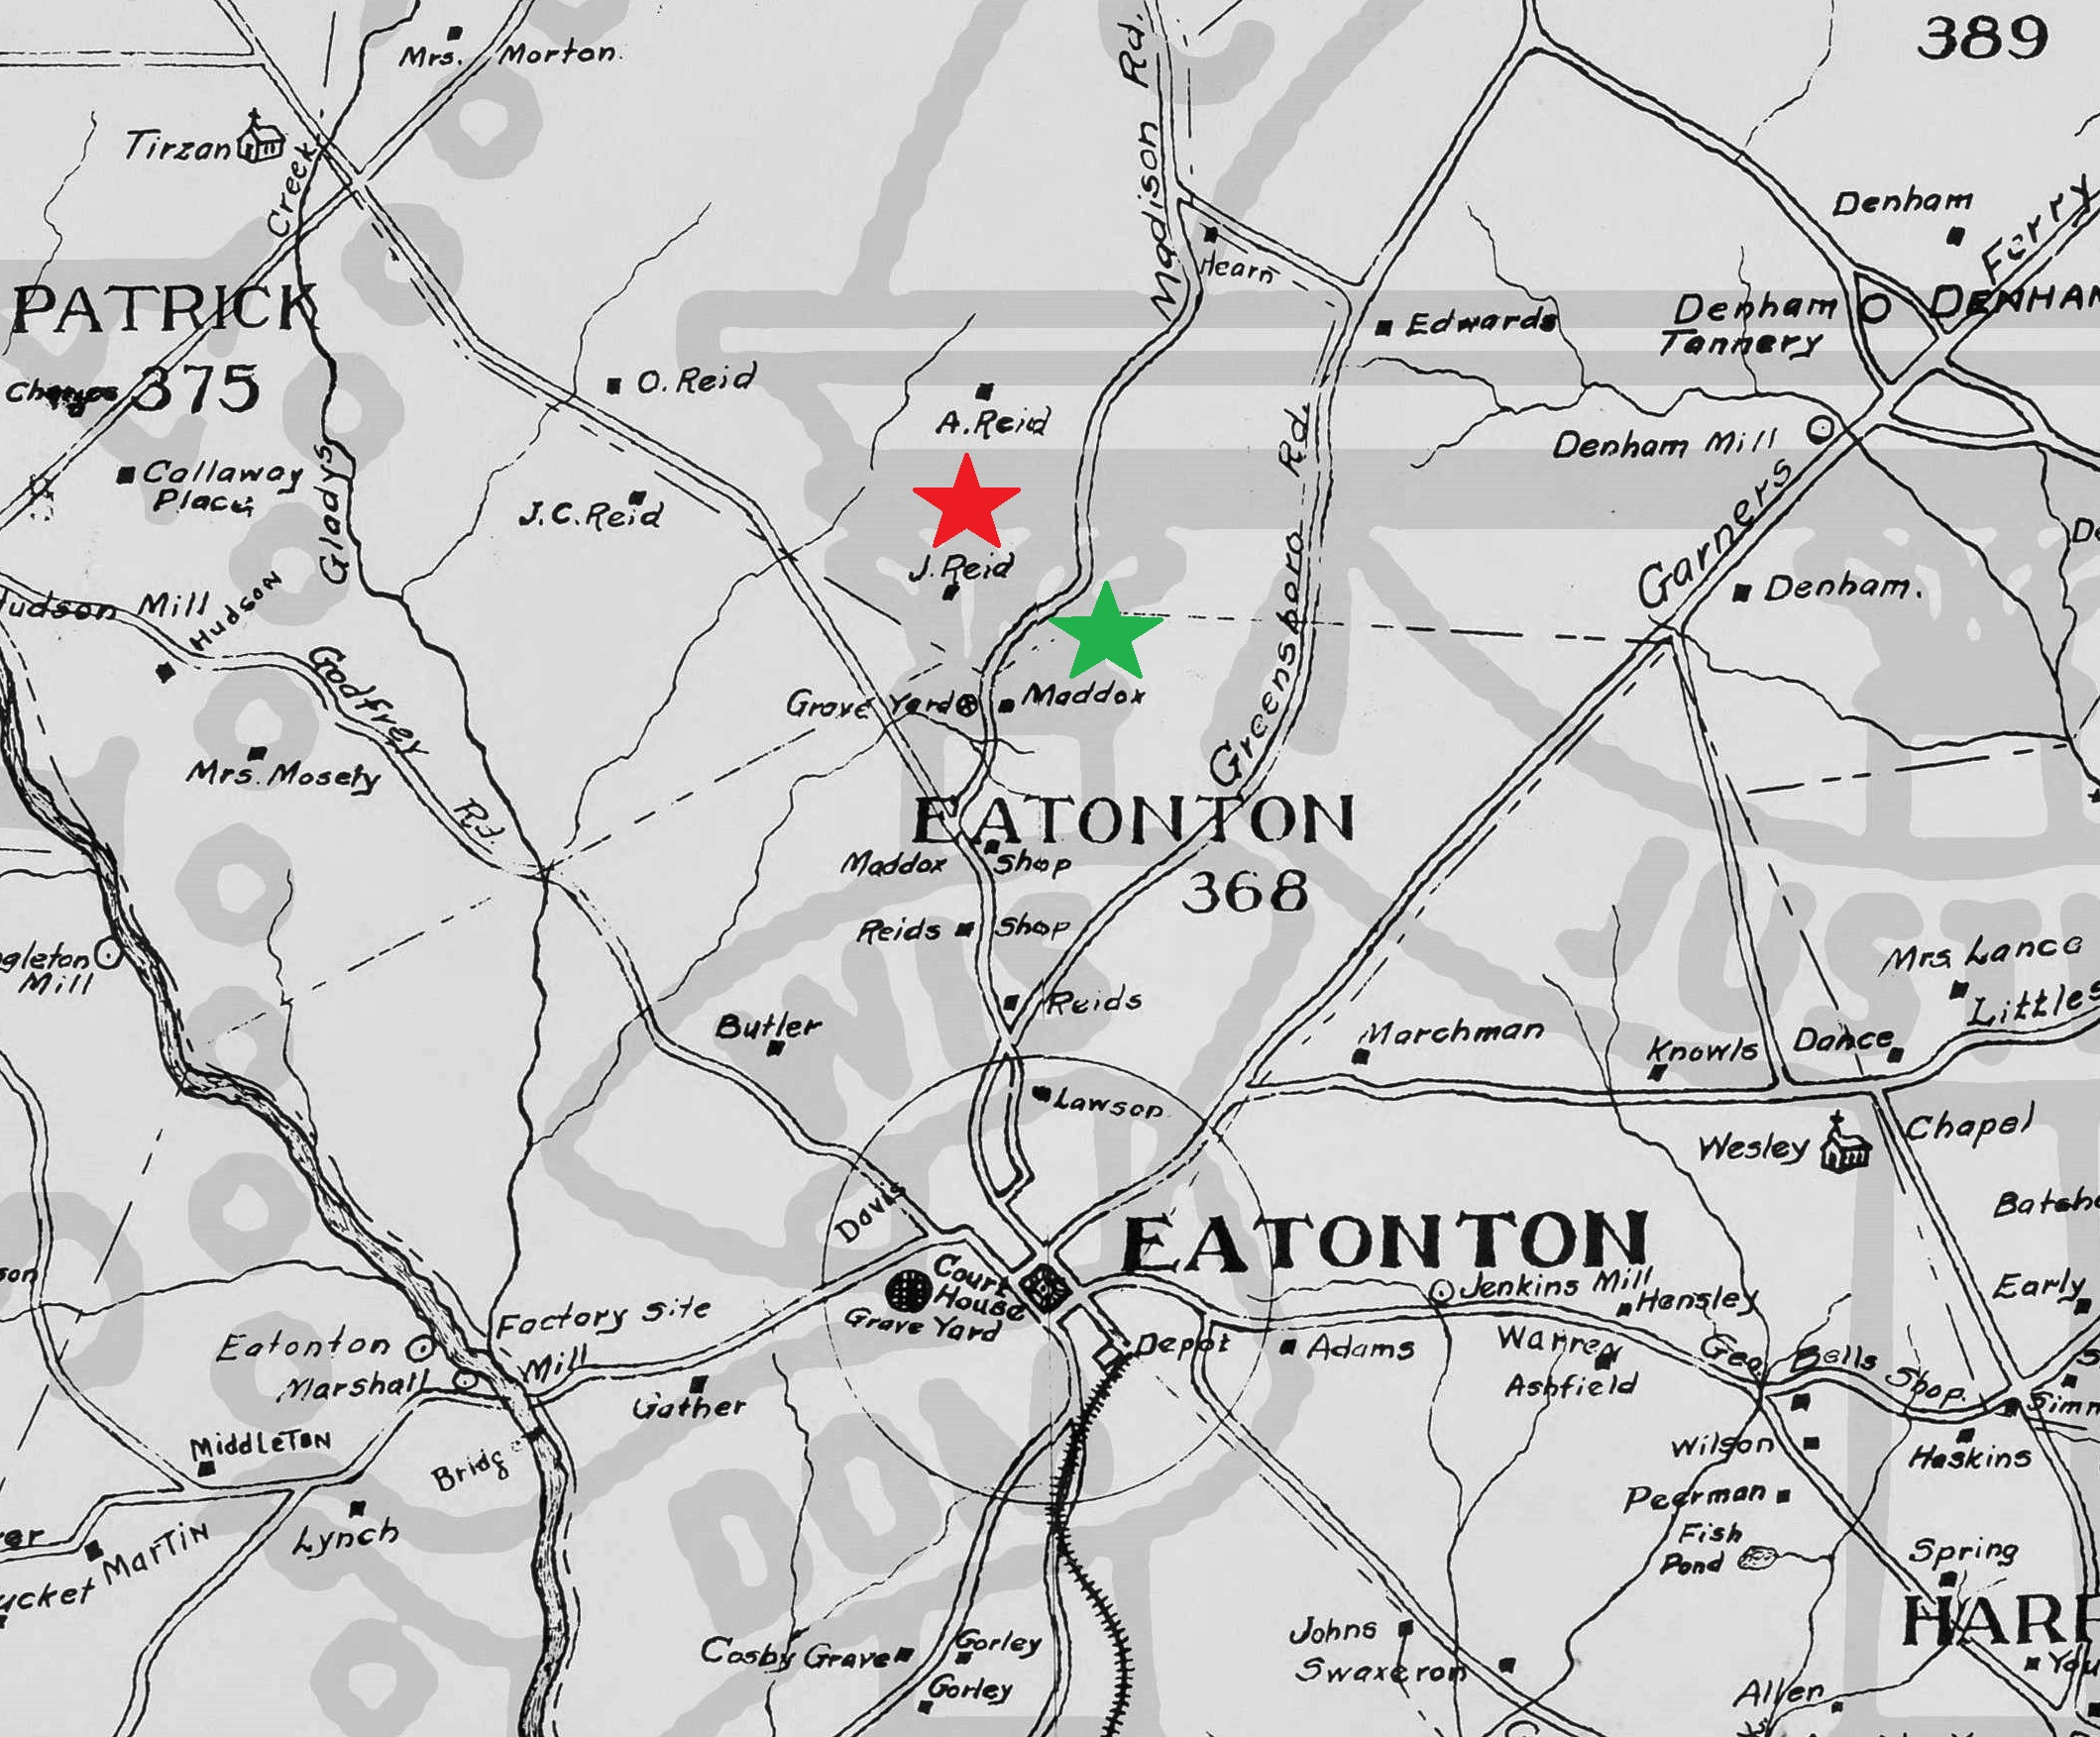 Map_of_Putnam_County 1878 - emp on Eatonton -Maddox